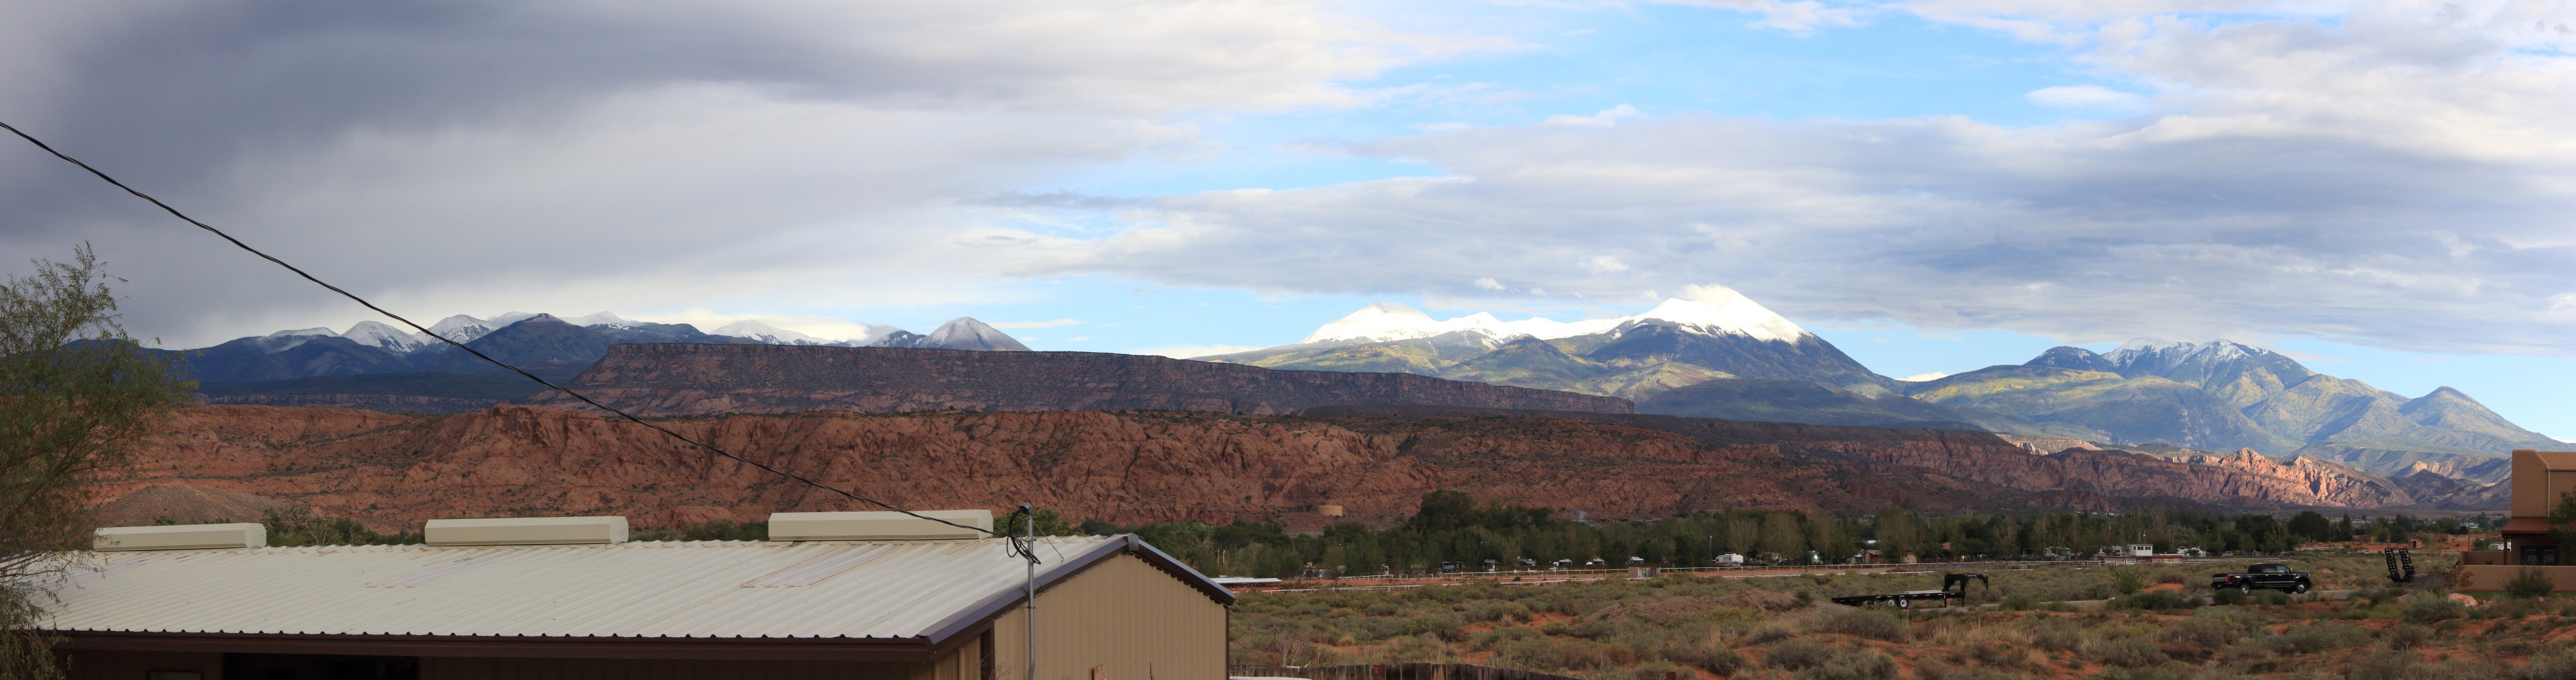 The La Sal Mountains. Taken from the KOA camp in Moab. There was no snow during the previous day, but it's quite visible now as the clouds (and weather) clear.